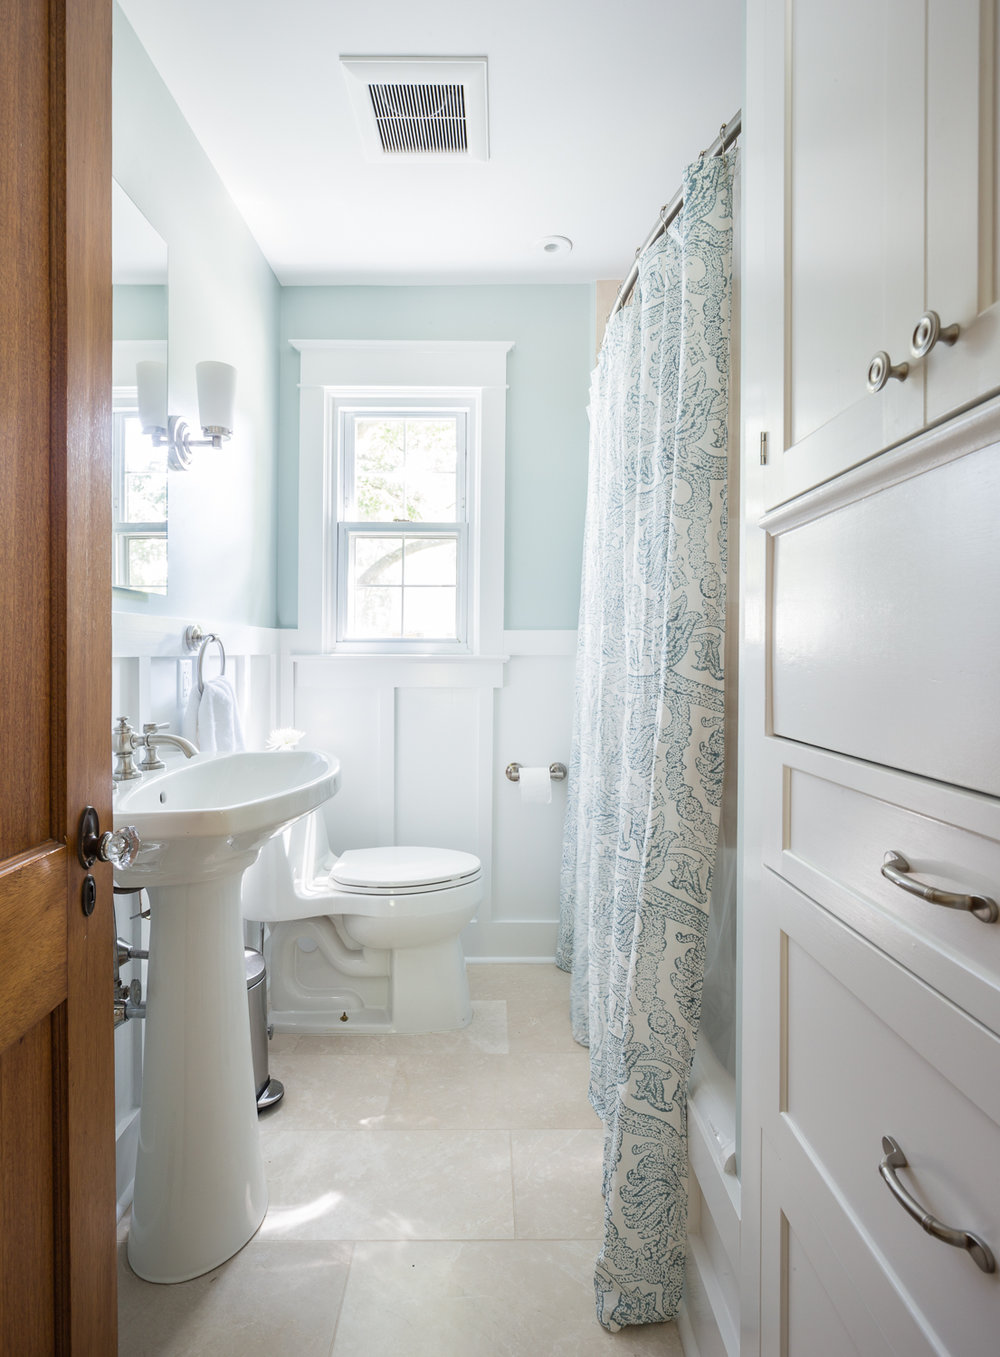 Bathroom Remodel | Larina Kase Interior Design | Architectural Photography by Aliza Schlabach